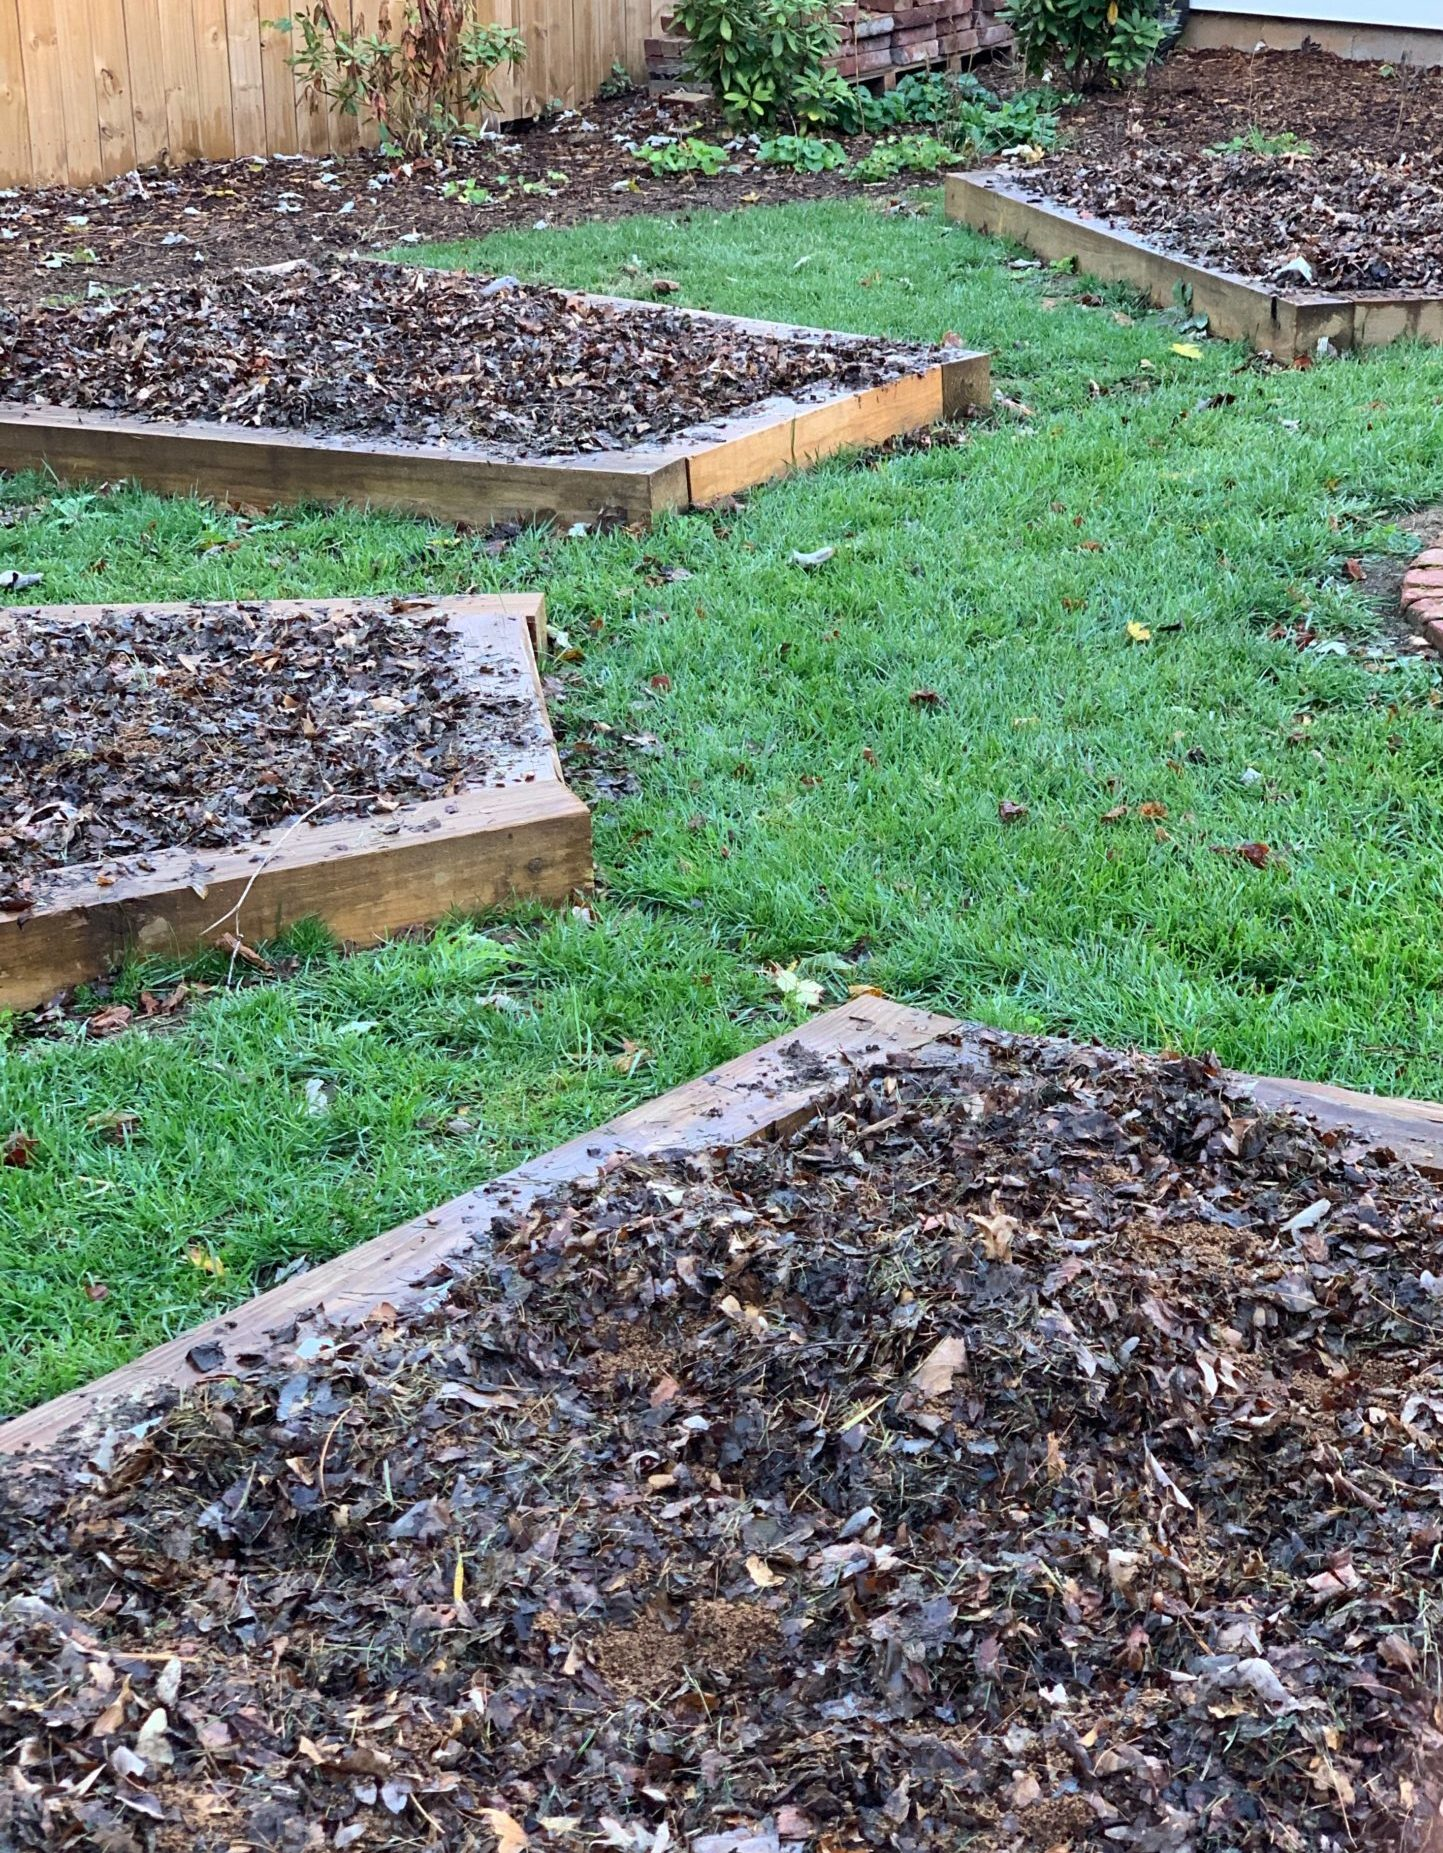 Raised beds mulched with shredded leaves